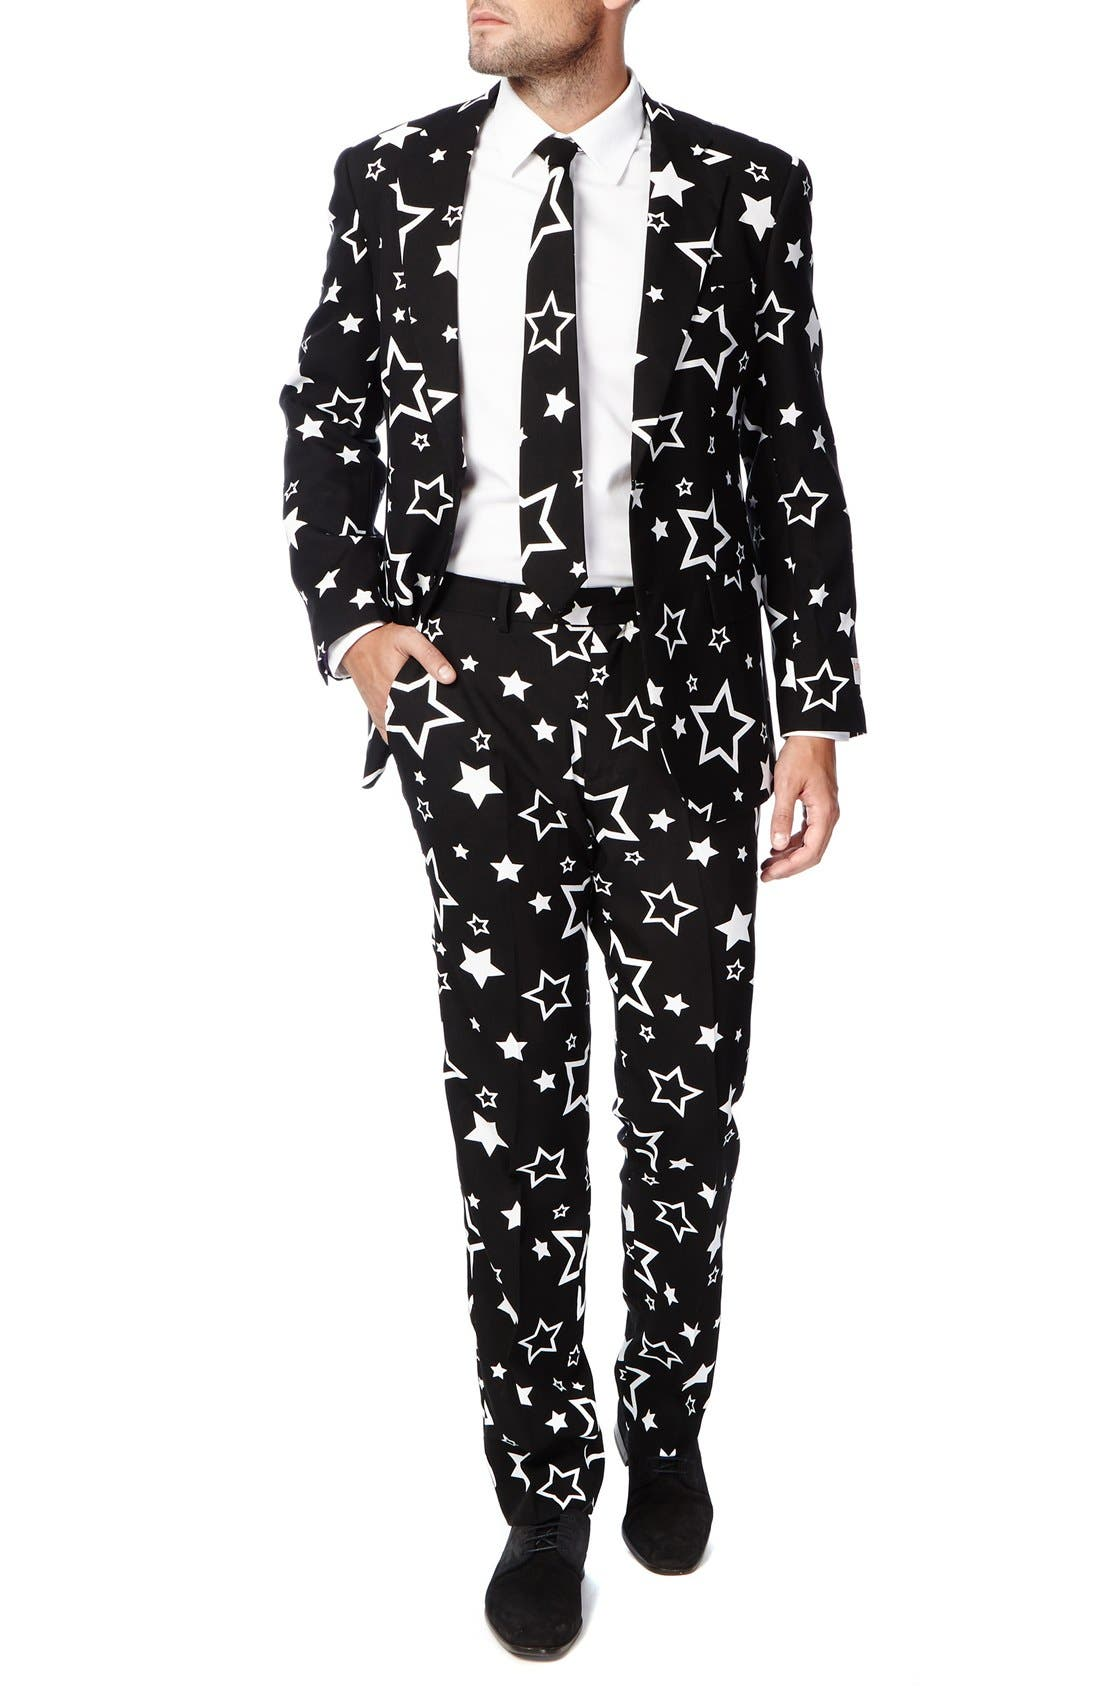 OPPOSUITS 'Starring' Trim Fit Two-Piece Suit with Tie